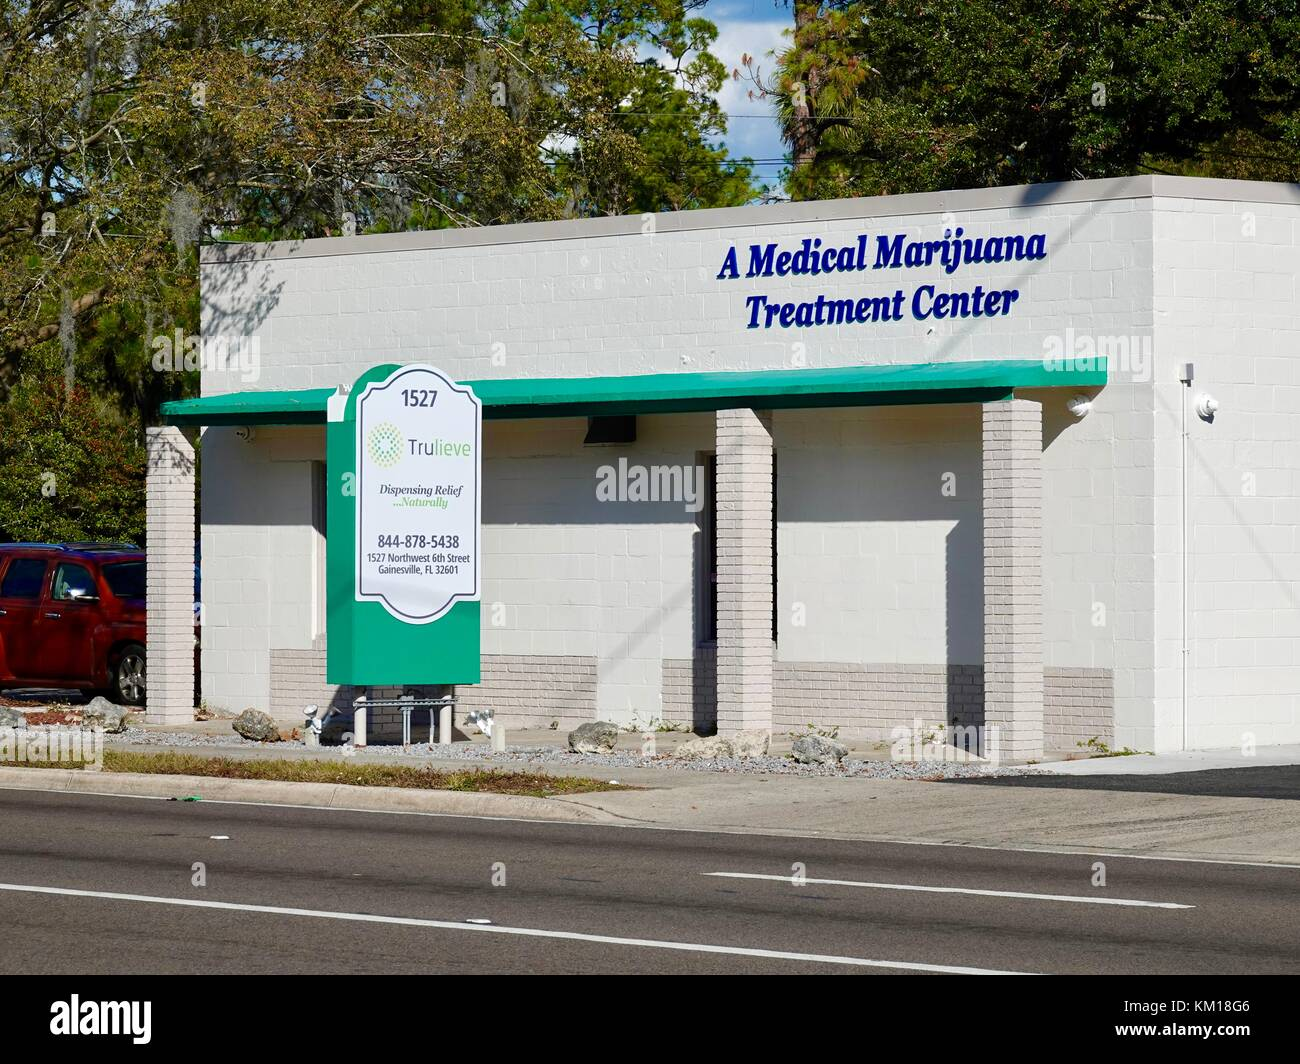 Trulieve stock symbol gallery symbols and meanings medical marijuana dispensary clinic stock photos medical a medical marijuana treatment center stock image biocorpaavc gallery biocorpaavc Image collections